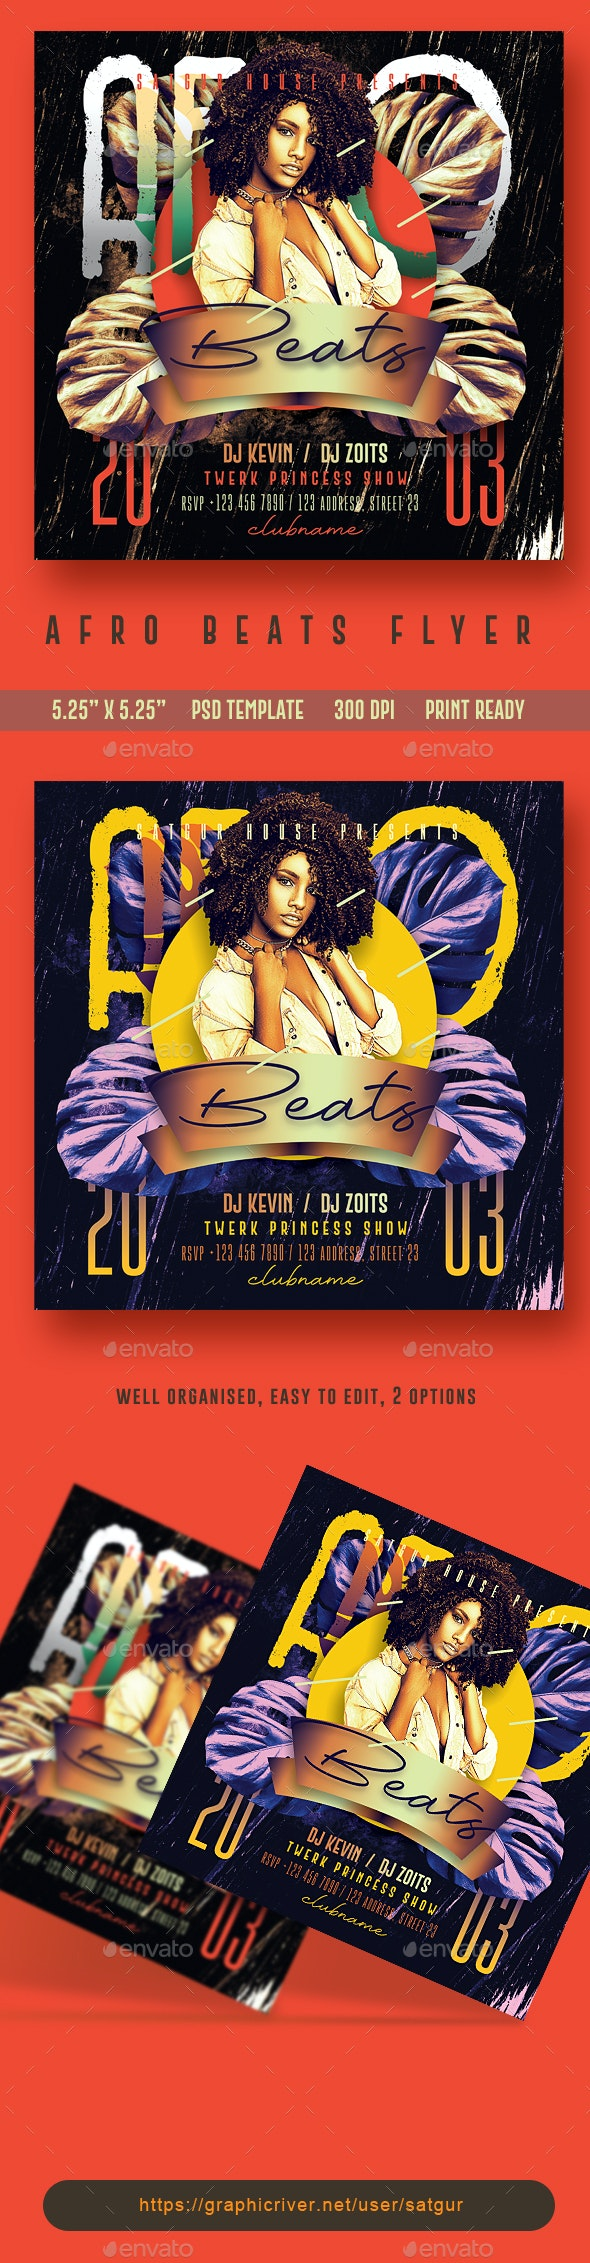 Afro Beats Flyer Template - Clubs & Parties Events